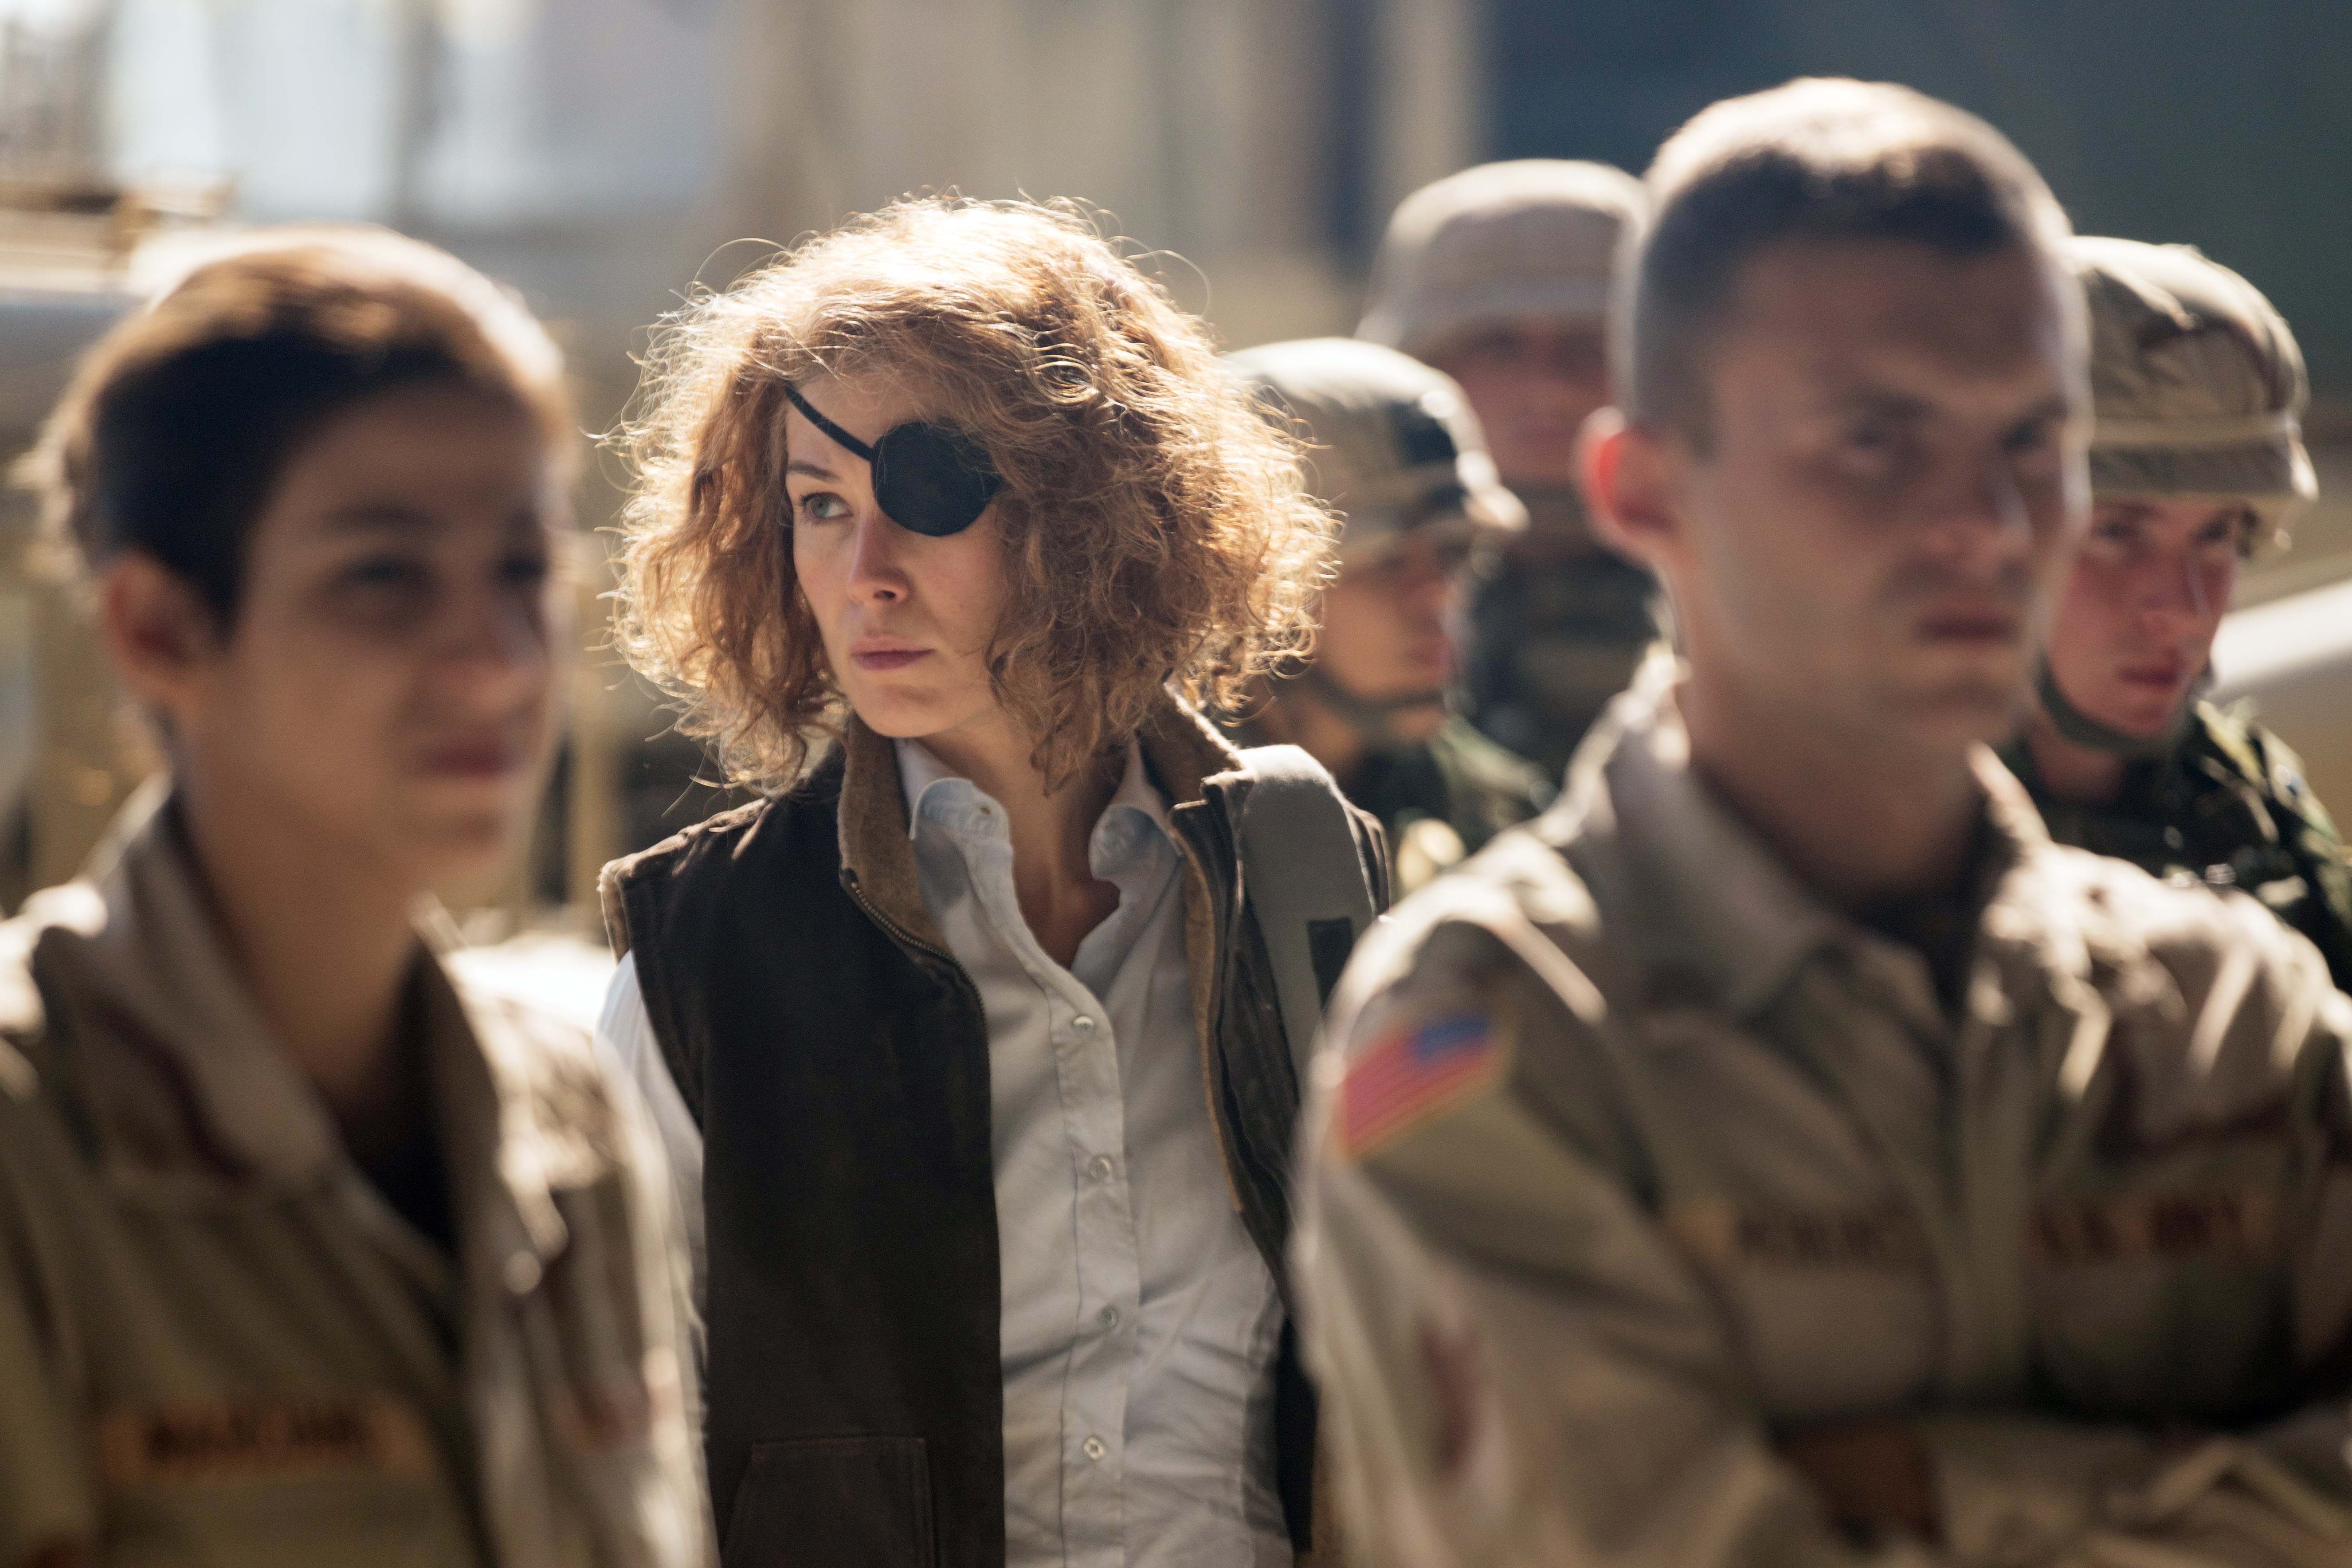 Marie Colvin (Rosamund Pike) enters the U.S. military base in the Iraqi Green Zone in A PRIVATE WAR.